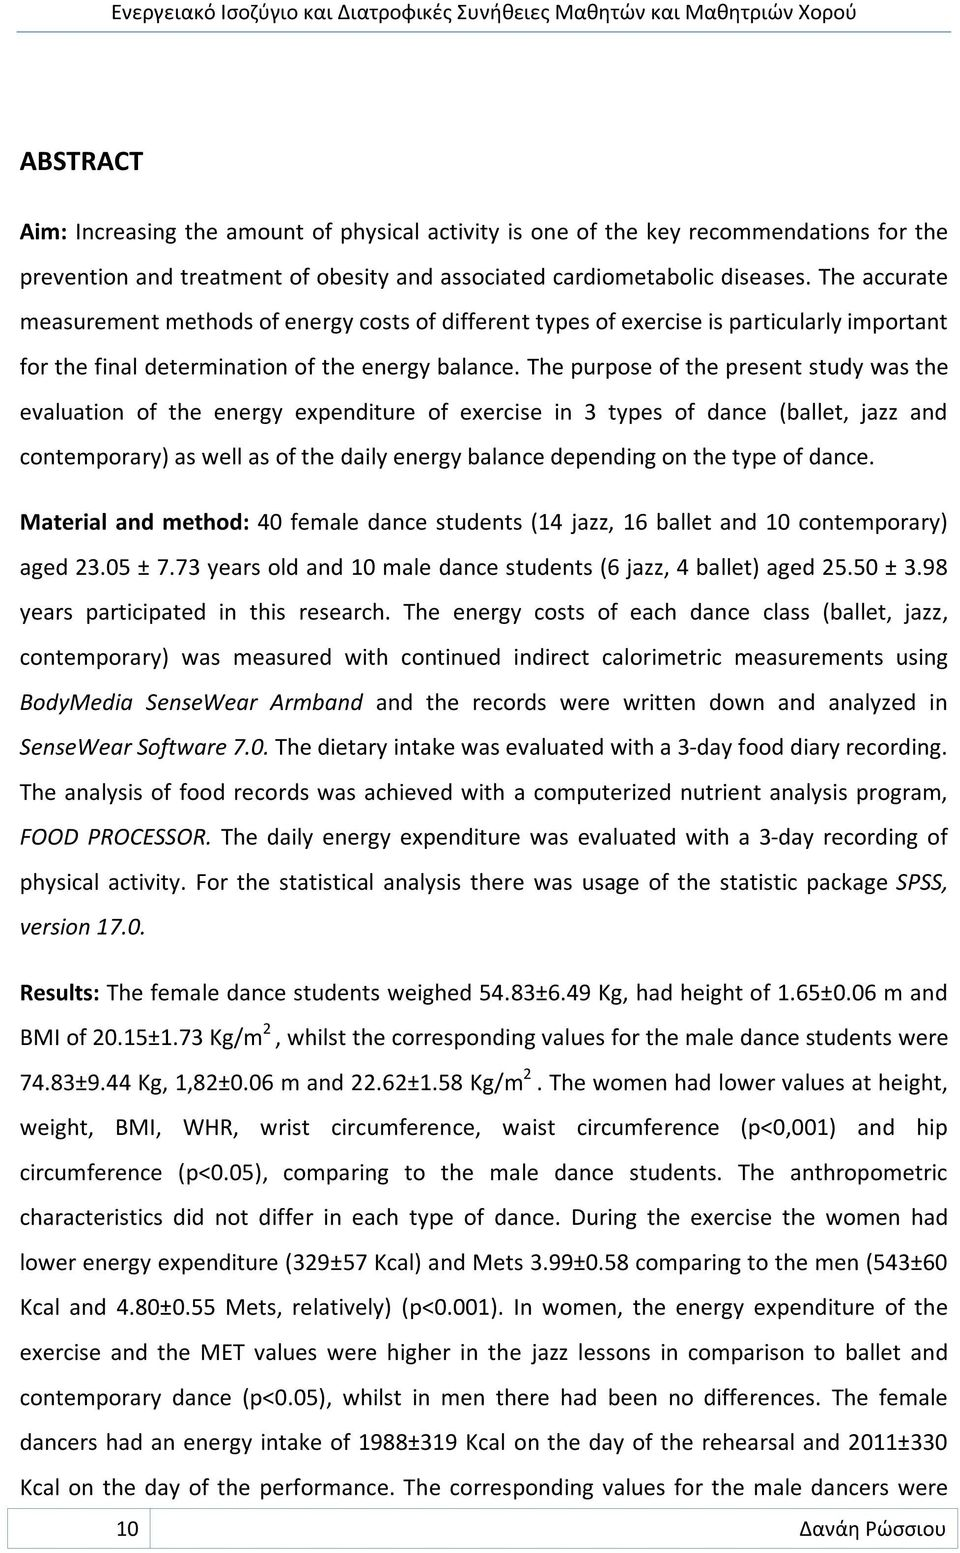 The purpose of the present study was the evaluation of the energy expenditure of exercise in 3 types of dance (ballet, jazz and contemporary) as well as of the daily energy balance depending on the